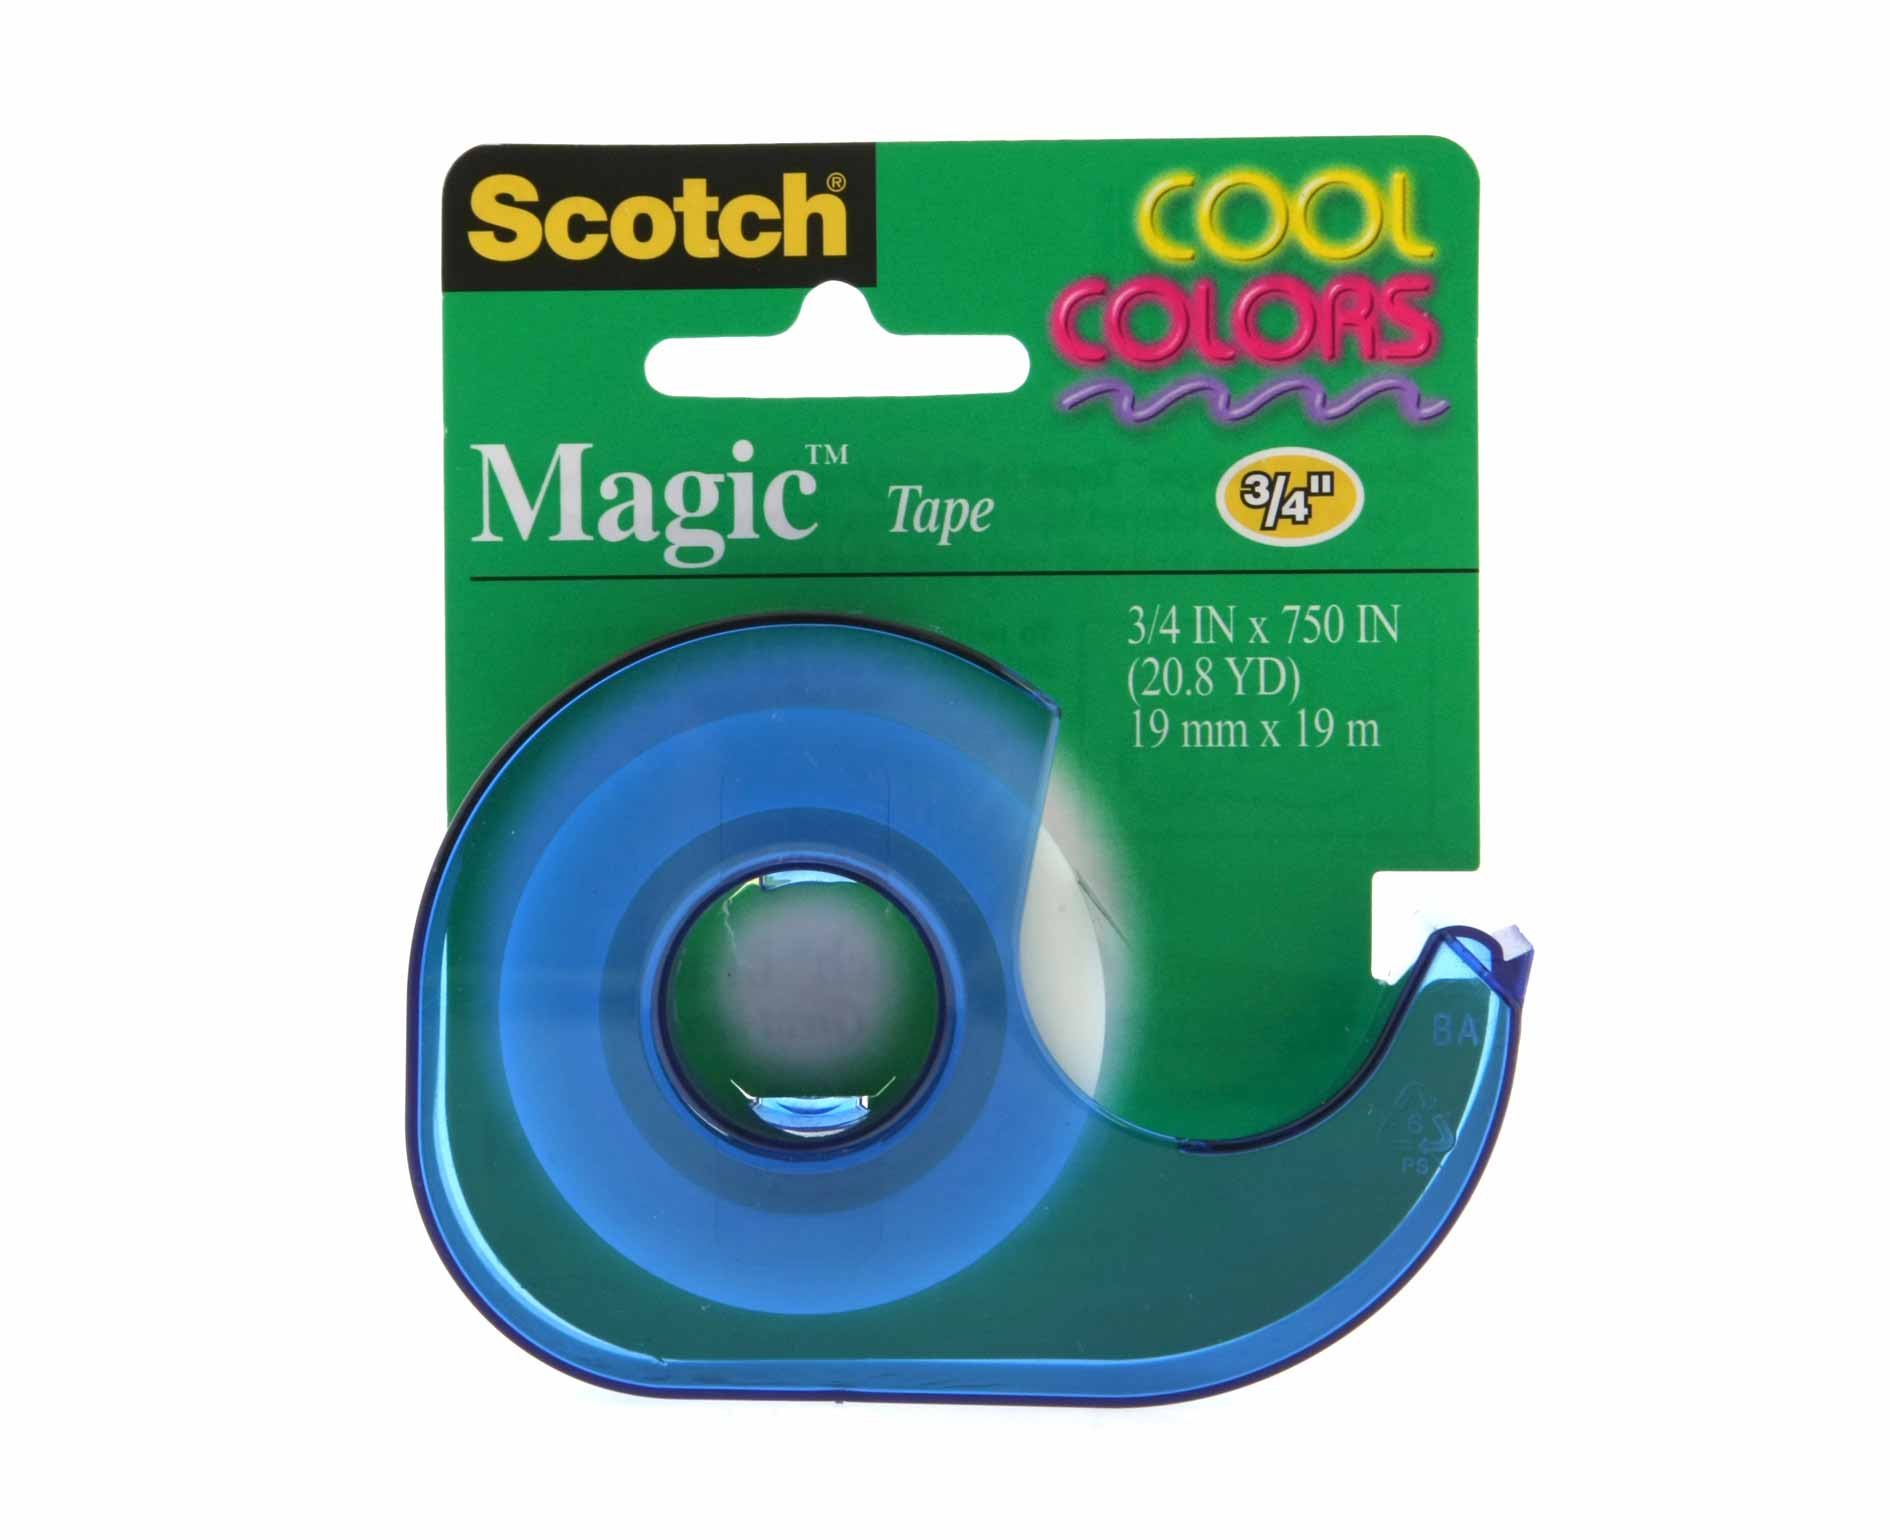 Image of 3M Scotch Magic Tape 19mm x 19m with Coloured Dispenser, Cool Color